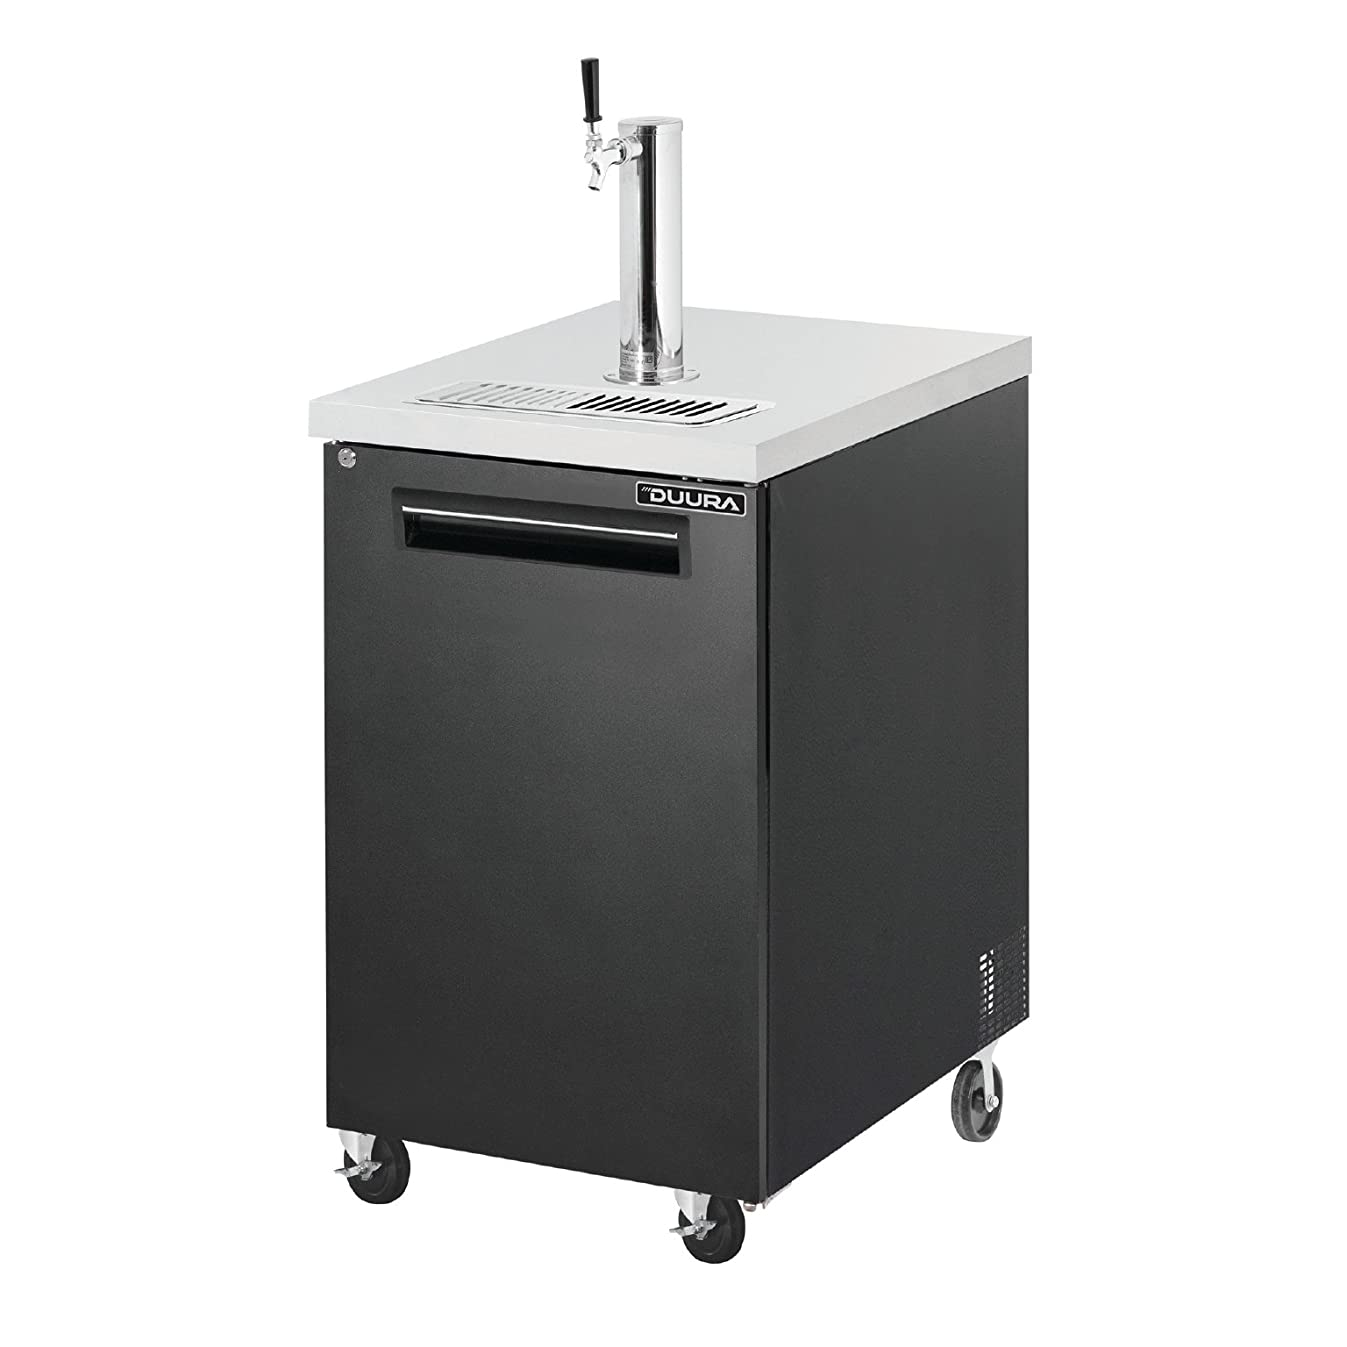 DUURA DLKC24 Keg Cooler with Tower, Stainless Steel(Discontinued by Manufacturer)